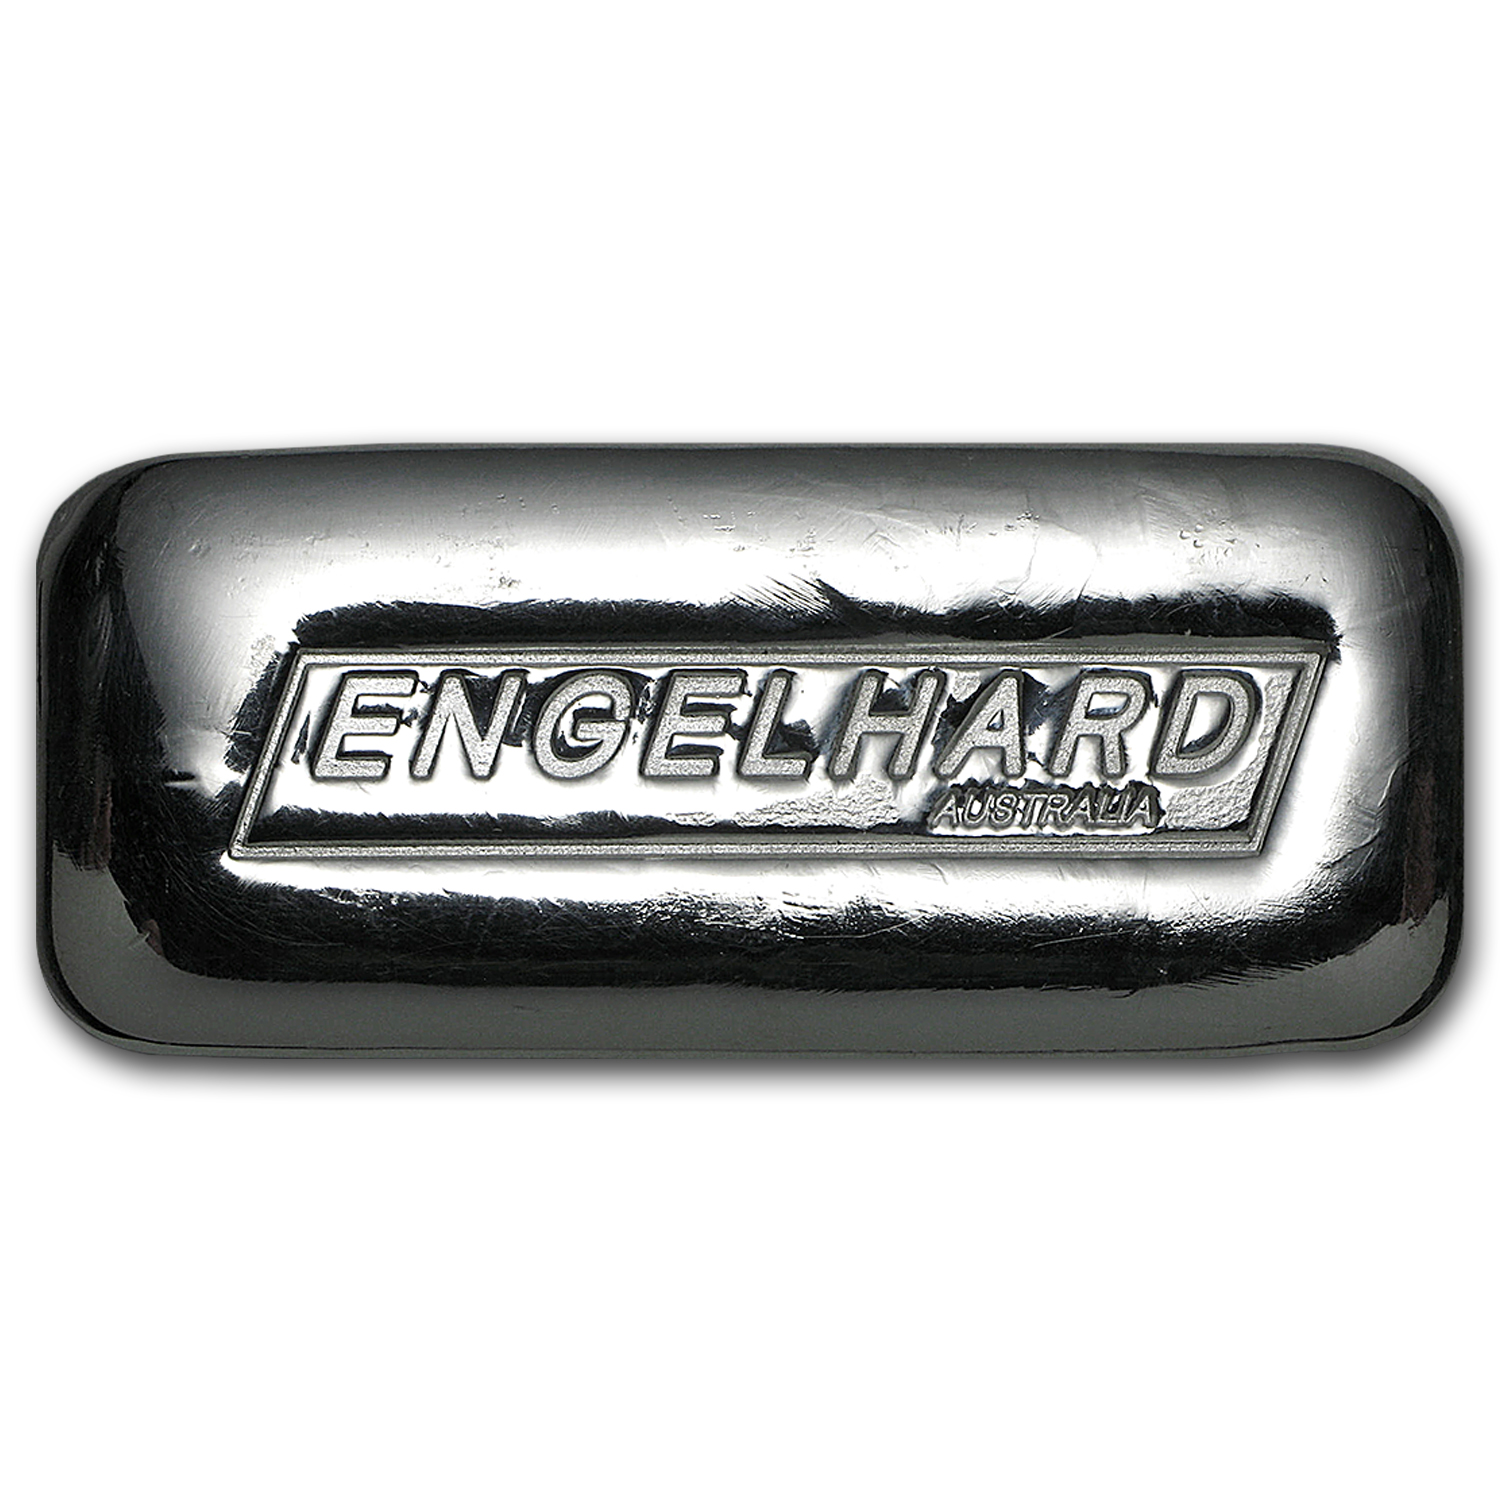 5 oz Silver Bar - Engelhard-Australia (New, Cast)